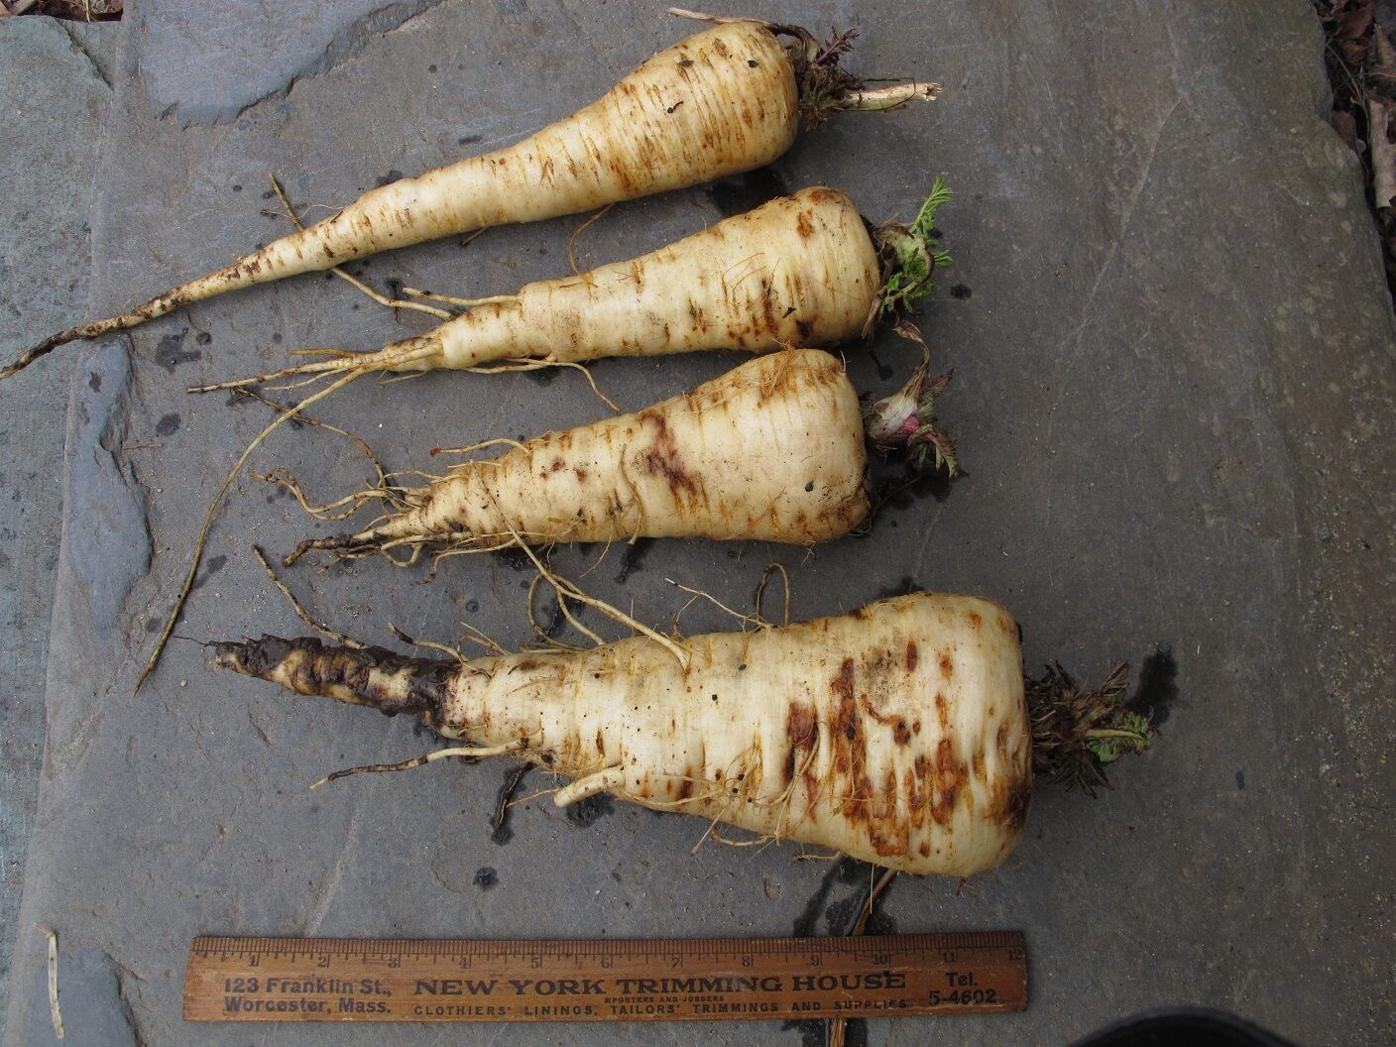 Parsnips will grow in soil suitable for carrots and are an early spring treat.JPG